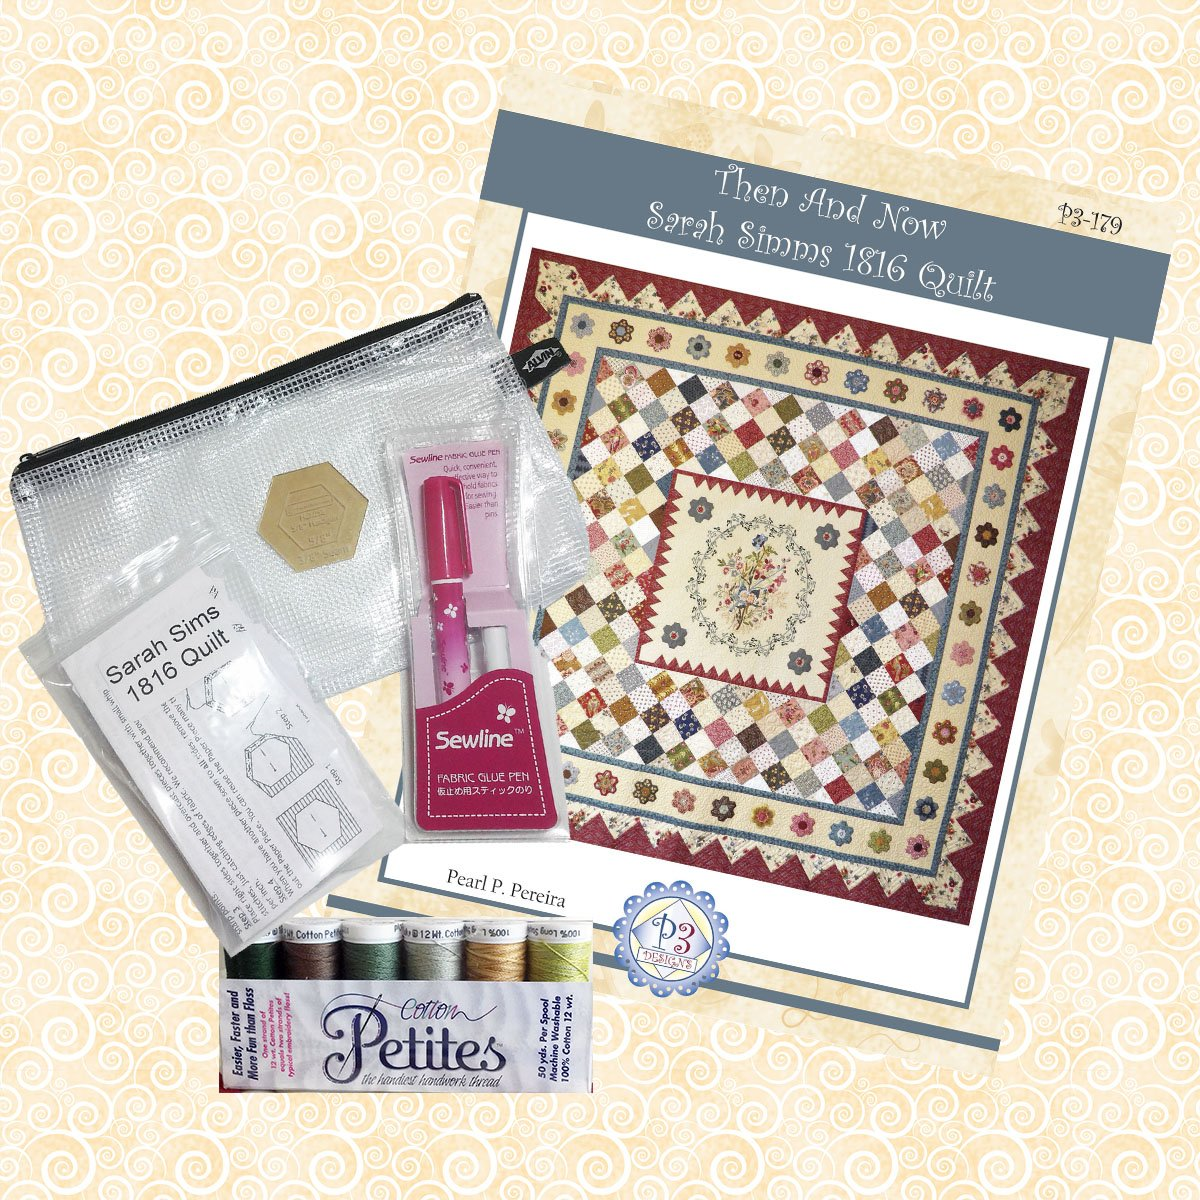 P3-179-Set Sarah Simms Pattern & Hexagon Kit